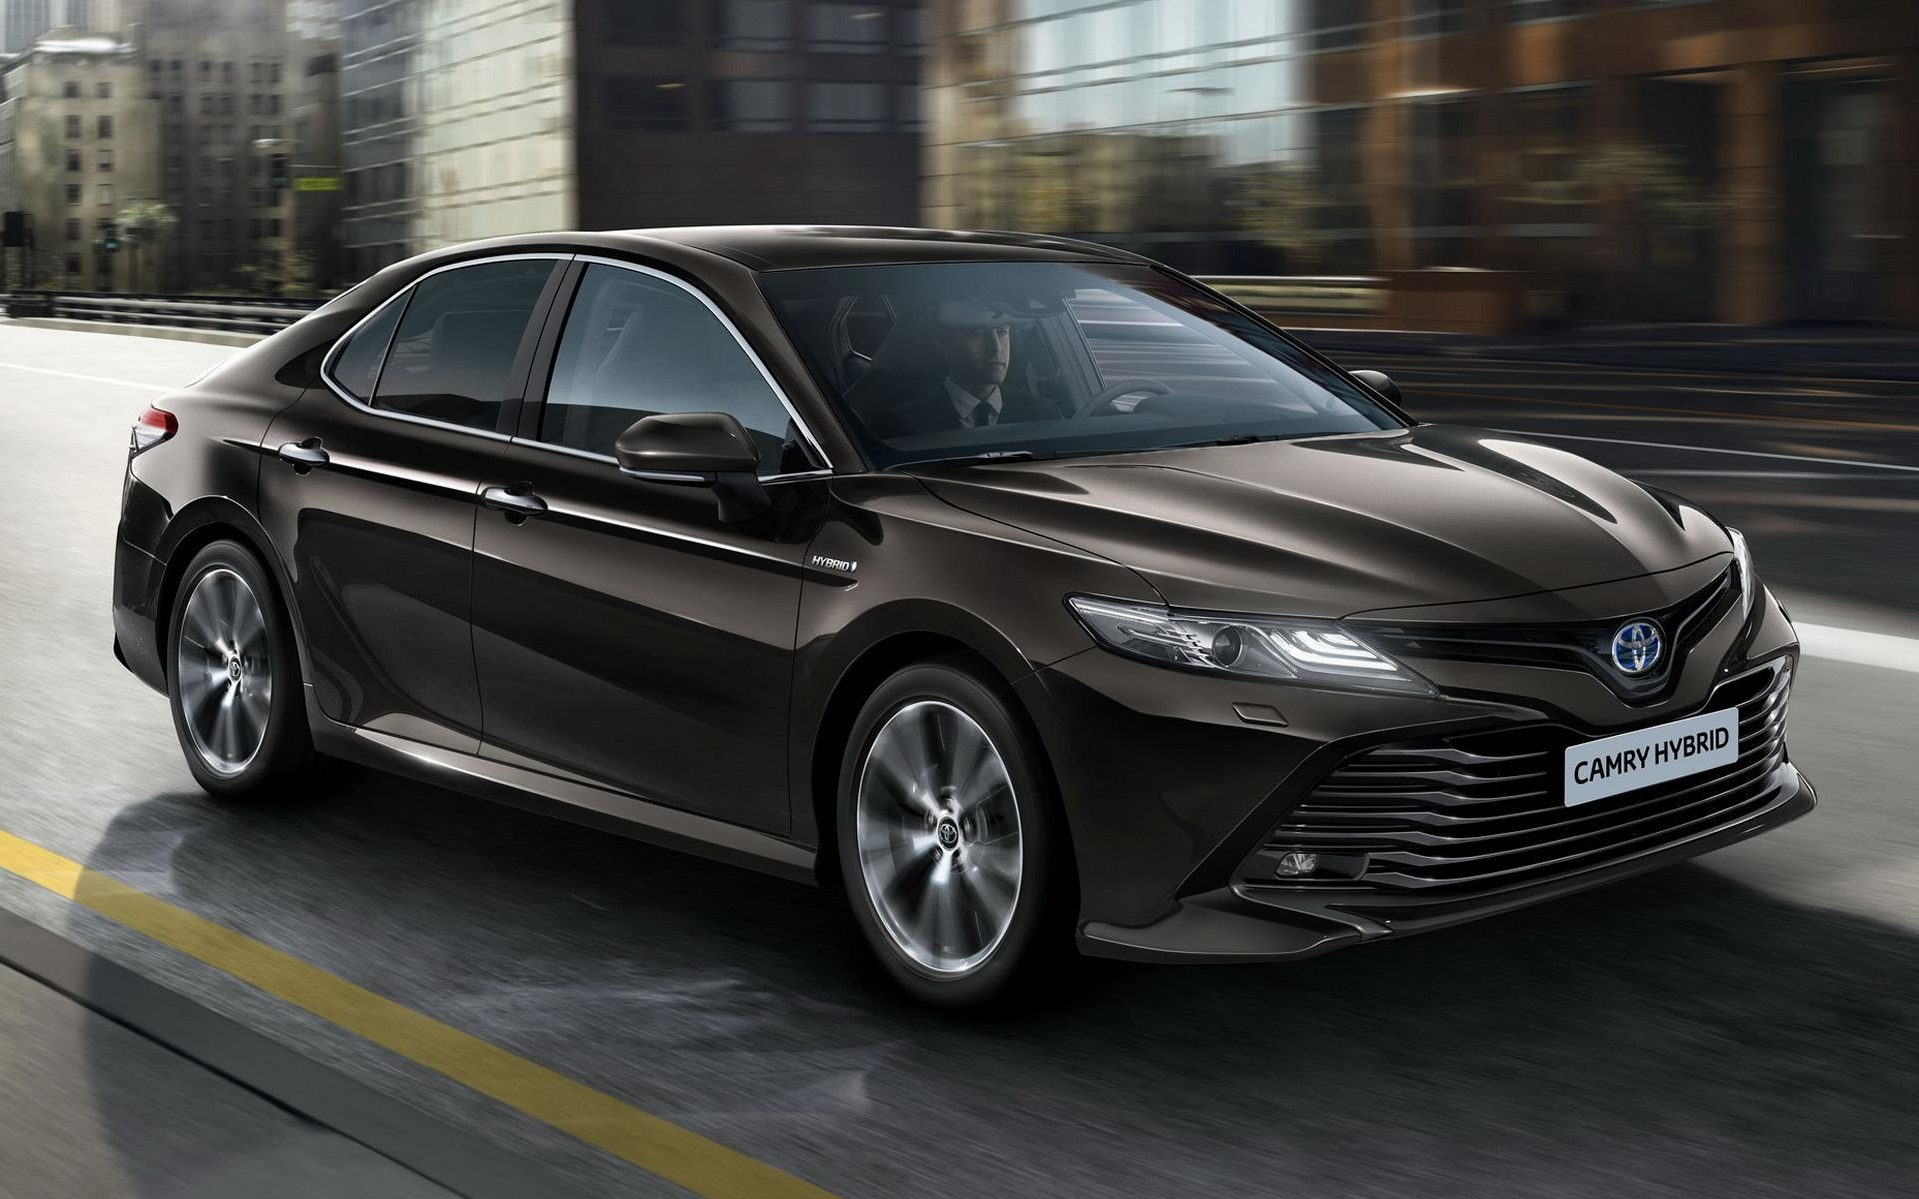 Toyota Camry from 2017 to 2020 models available for rent at empire rental cars at 445 empire boulevard best deals in New York City Brooklyn blue black red colors available as low as $175 empirerentalcars